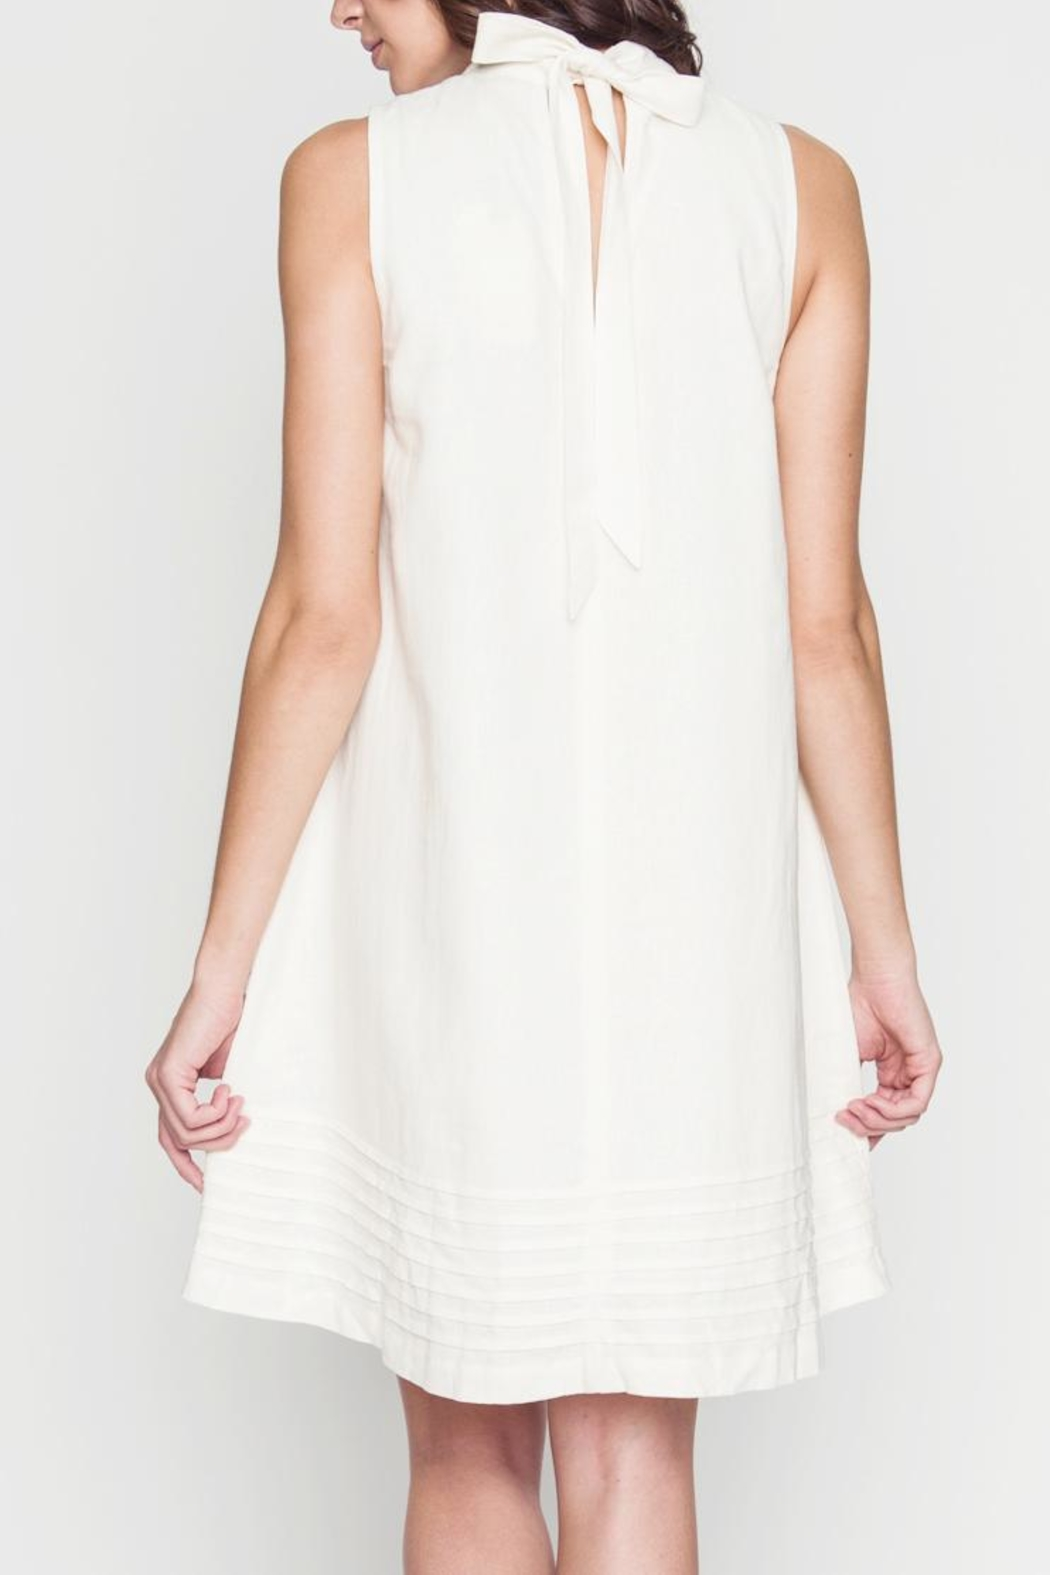 Movint Avril White Dress - Side Cropped Image